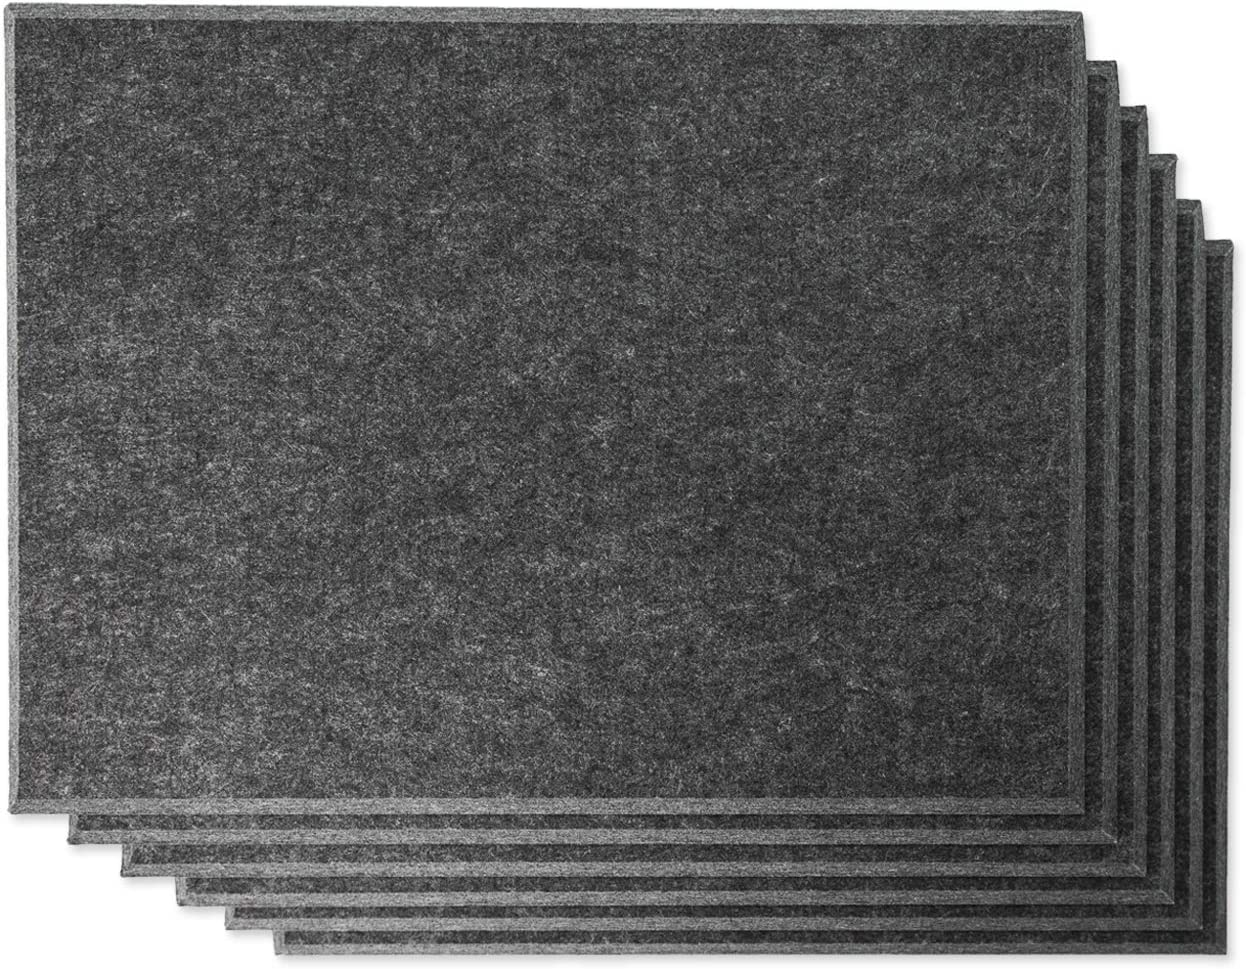 """Rhino Acoustic Absorption Panel 16"""" x 12"""" x 0.4"""" NRC Sound Proof Padding for Echo Bass Isolation Dark Gray 6 Pieces Beveled Edge for Wall Decoration and Acoustic Treatment"""